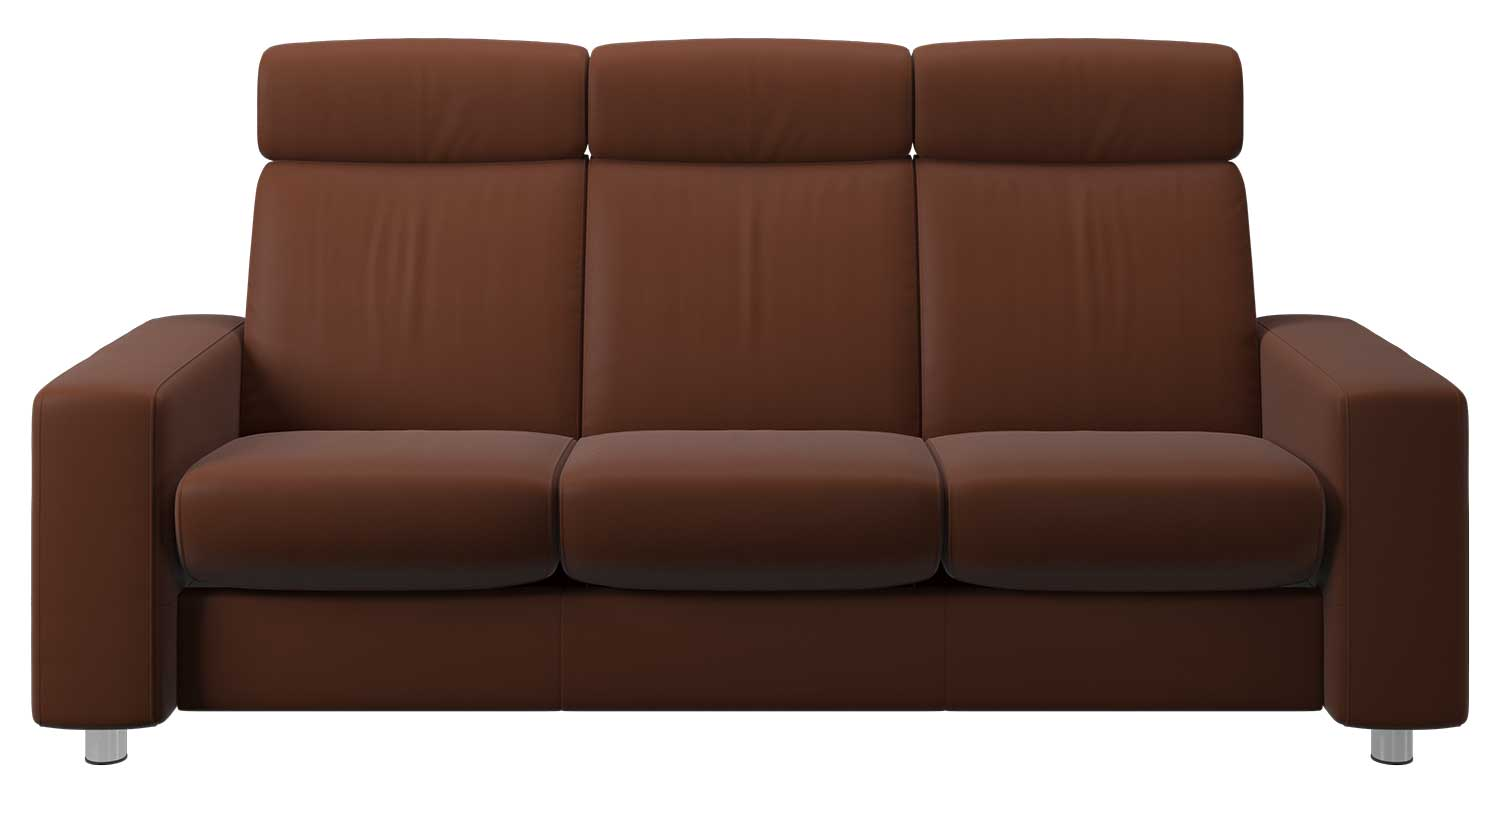 Stressless Sofa Cover High Back Sofas Inspirational High Back Sofas 66 About